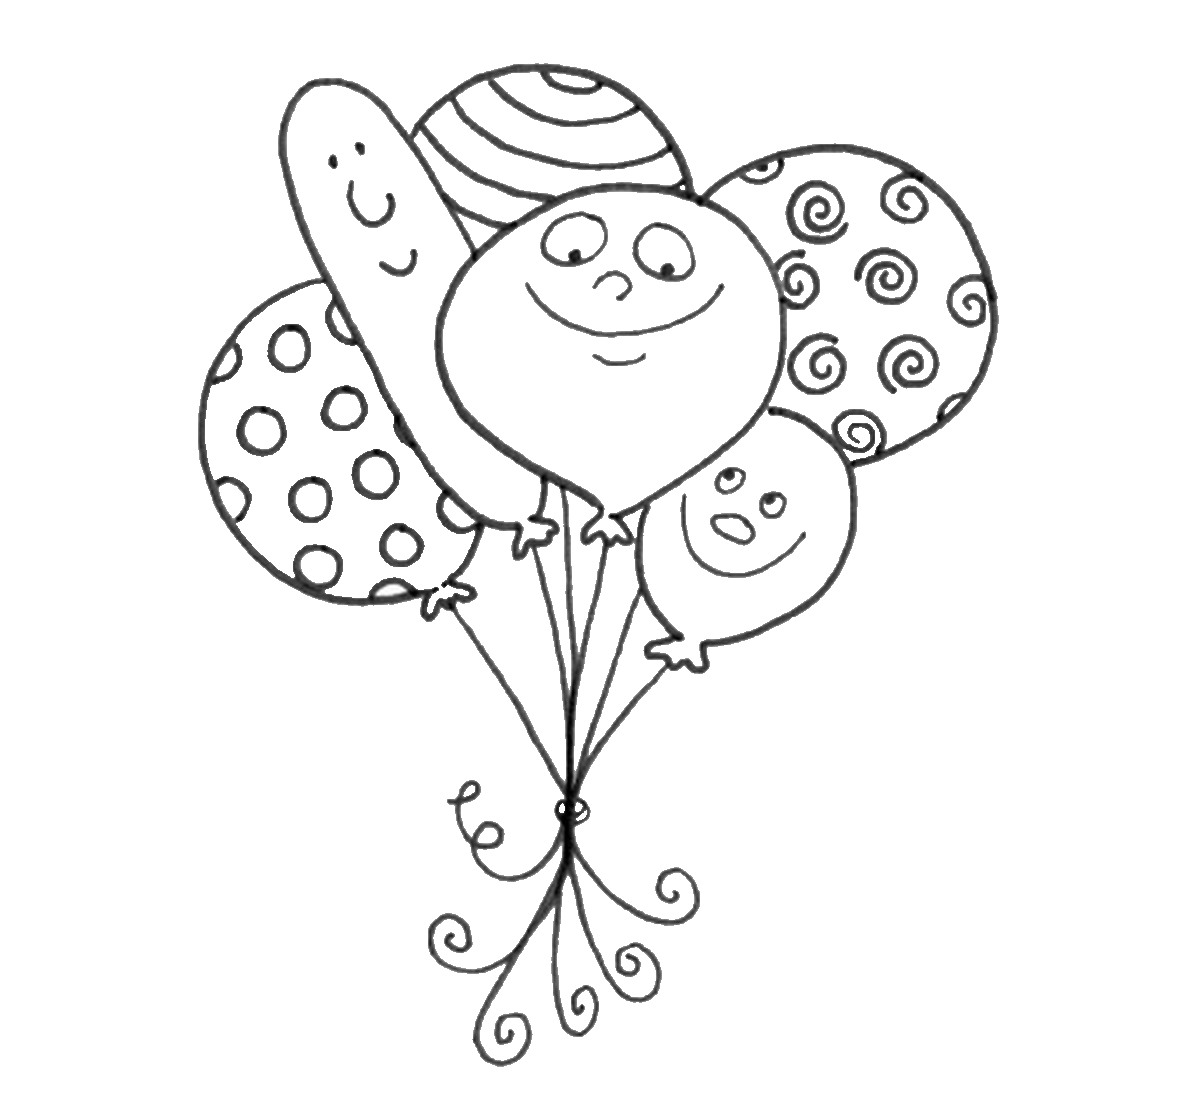 1200x1097 Balloons Coloring Pages